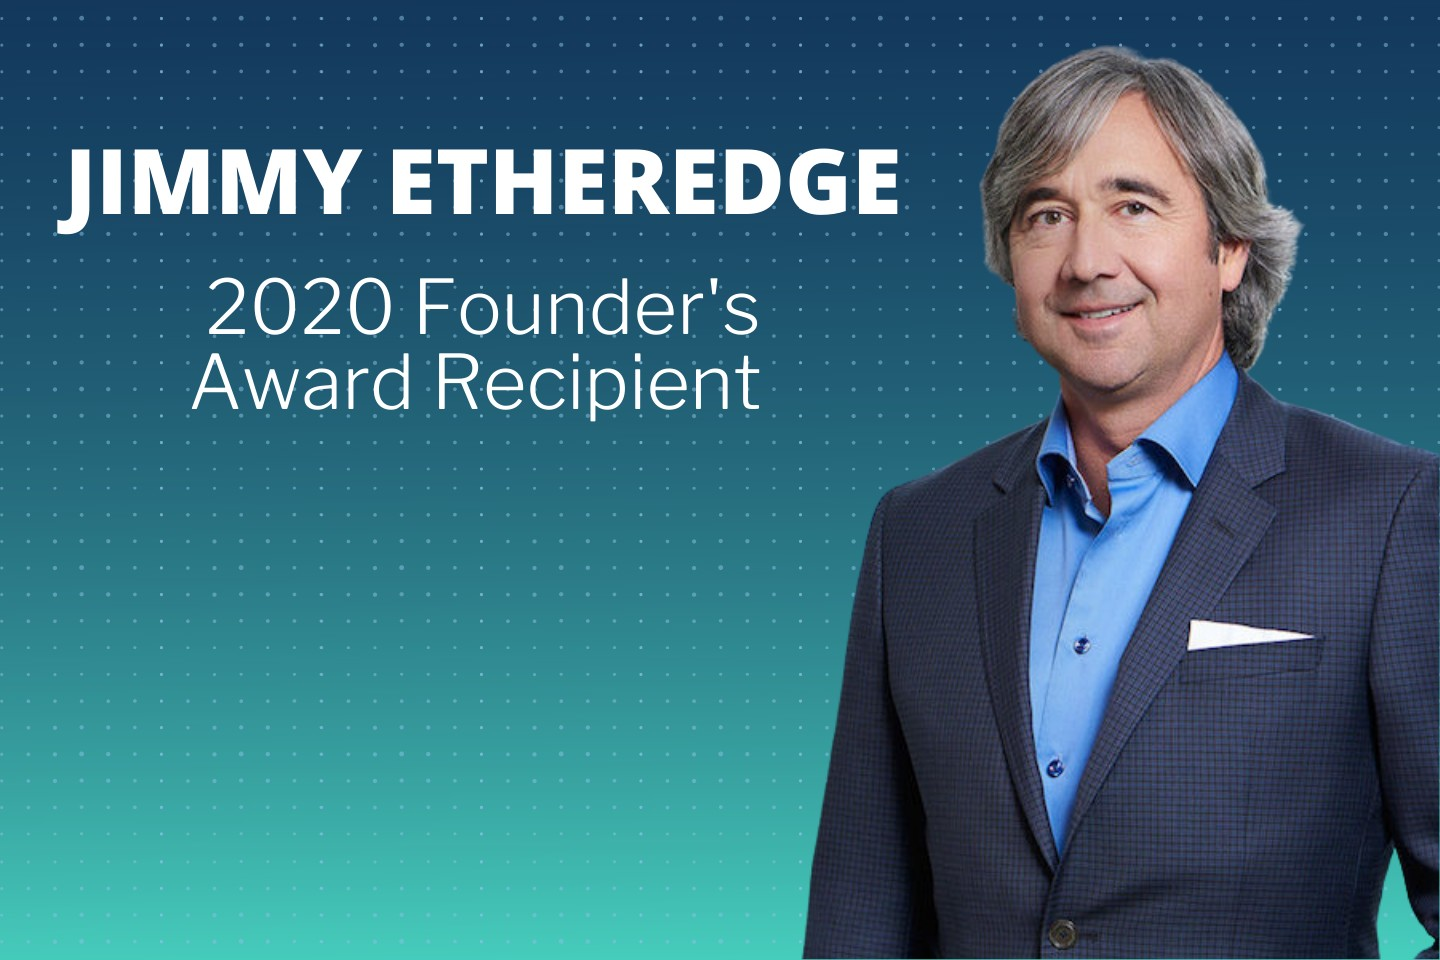 2020 Founder's Award Recipient - Jimmy Etheredge